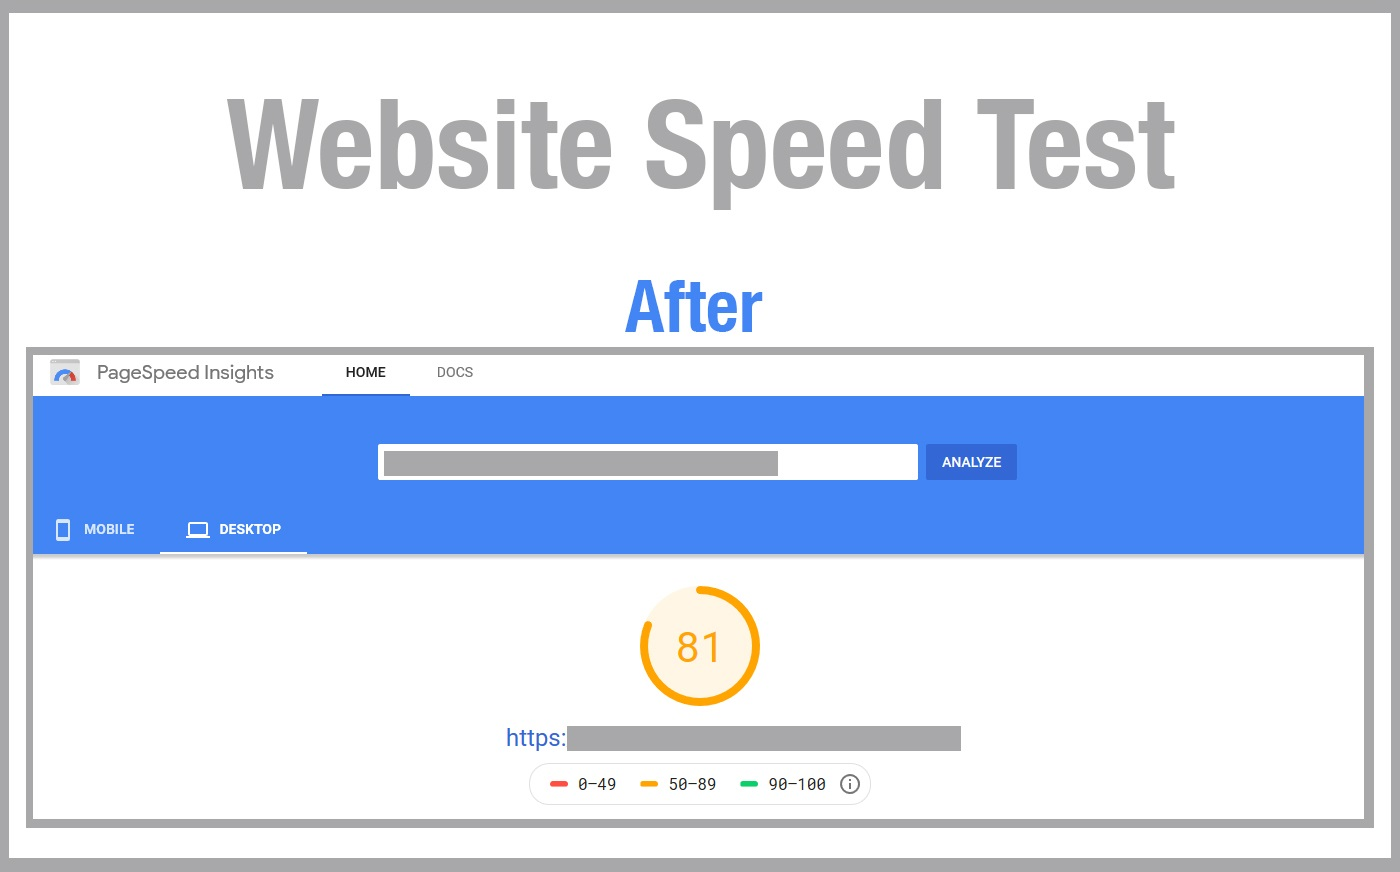 essential oil website speed test results after